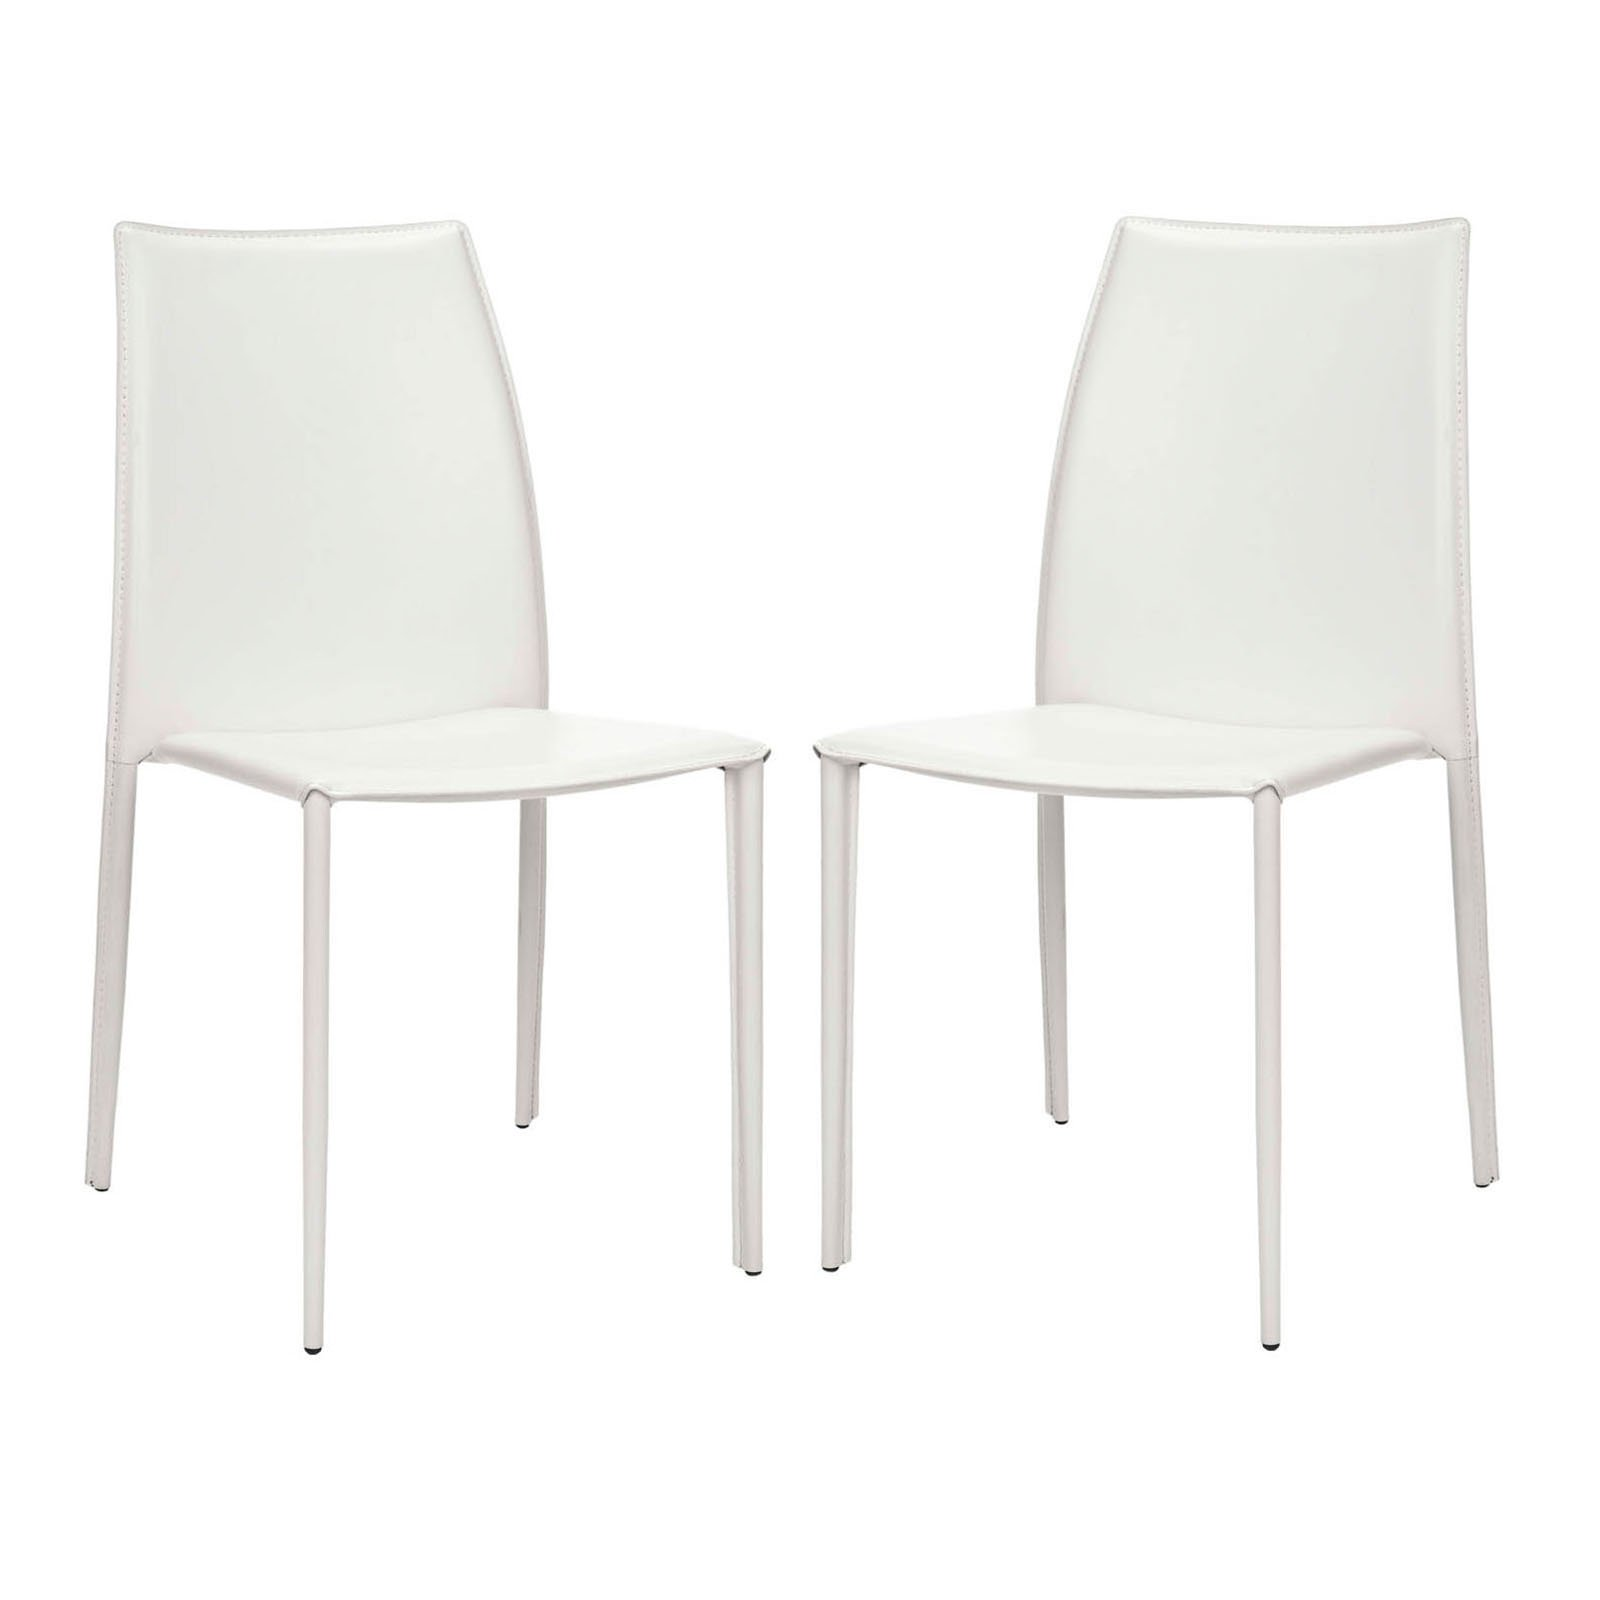 Safavieh Aidan Dining Side Chairs White Vinyl Set of 2 by Safavieh